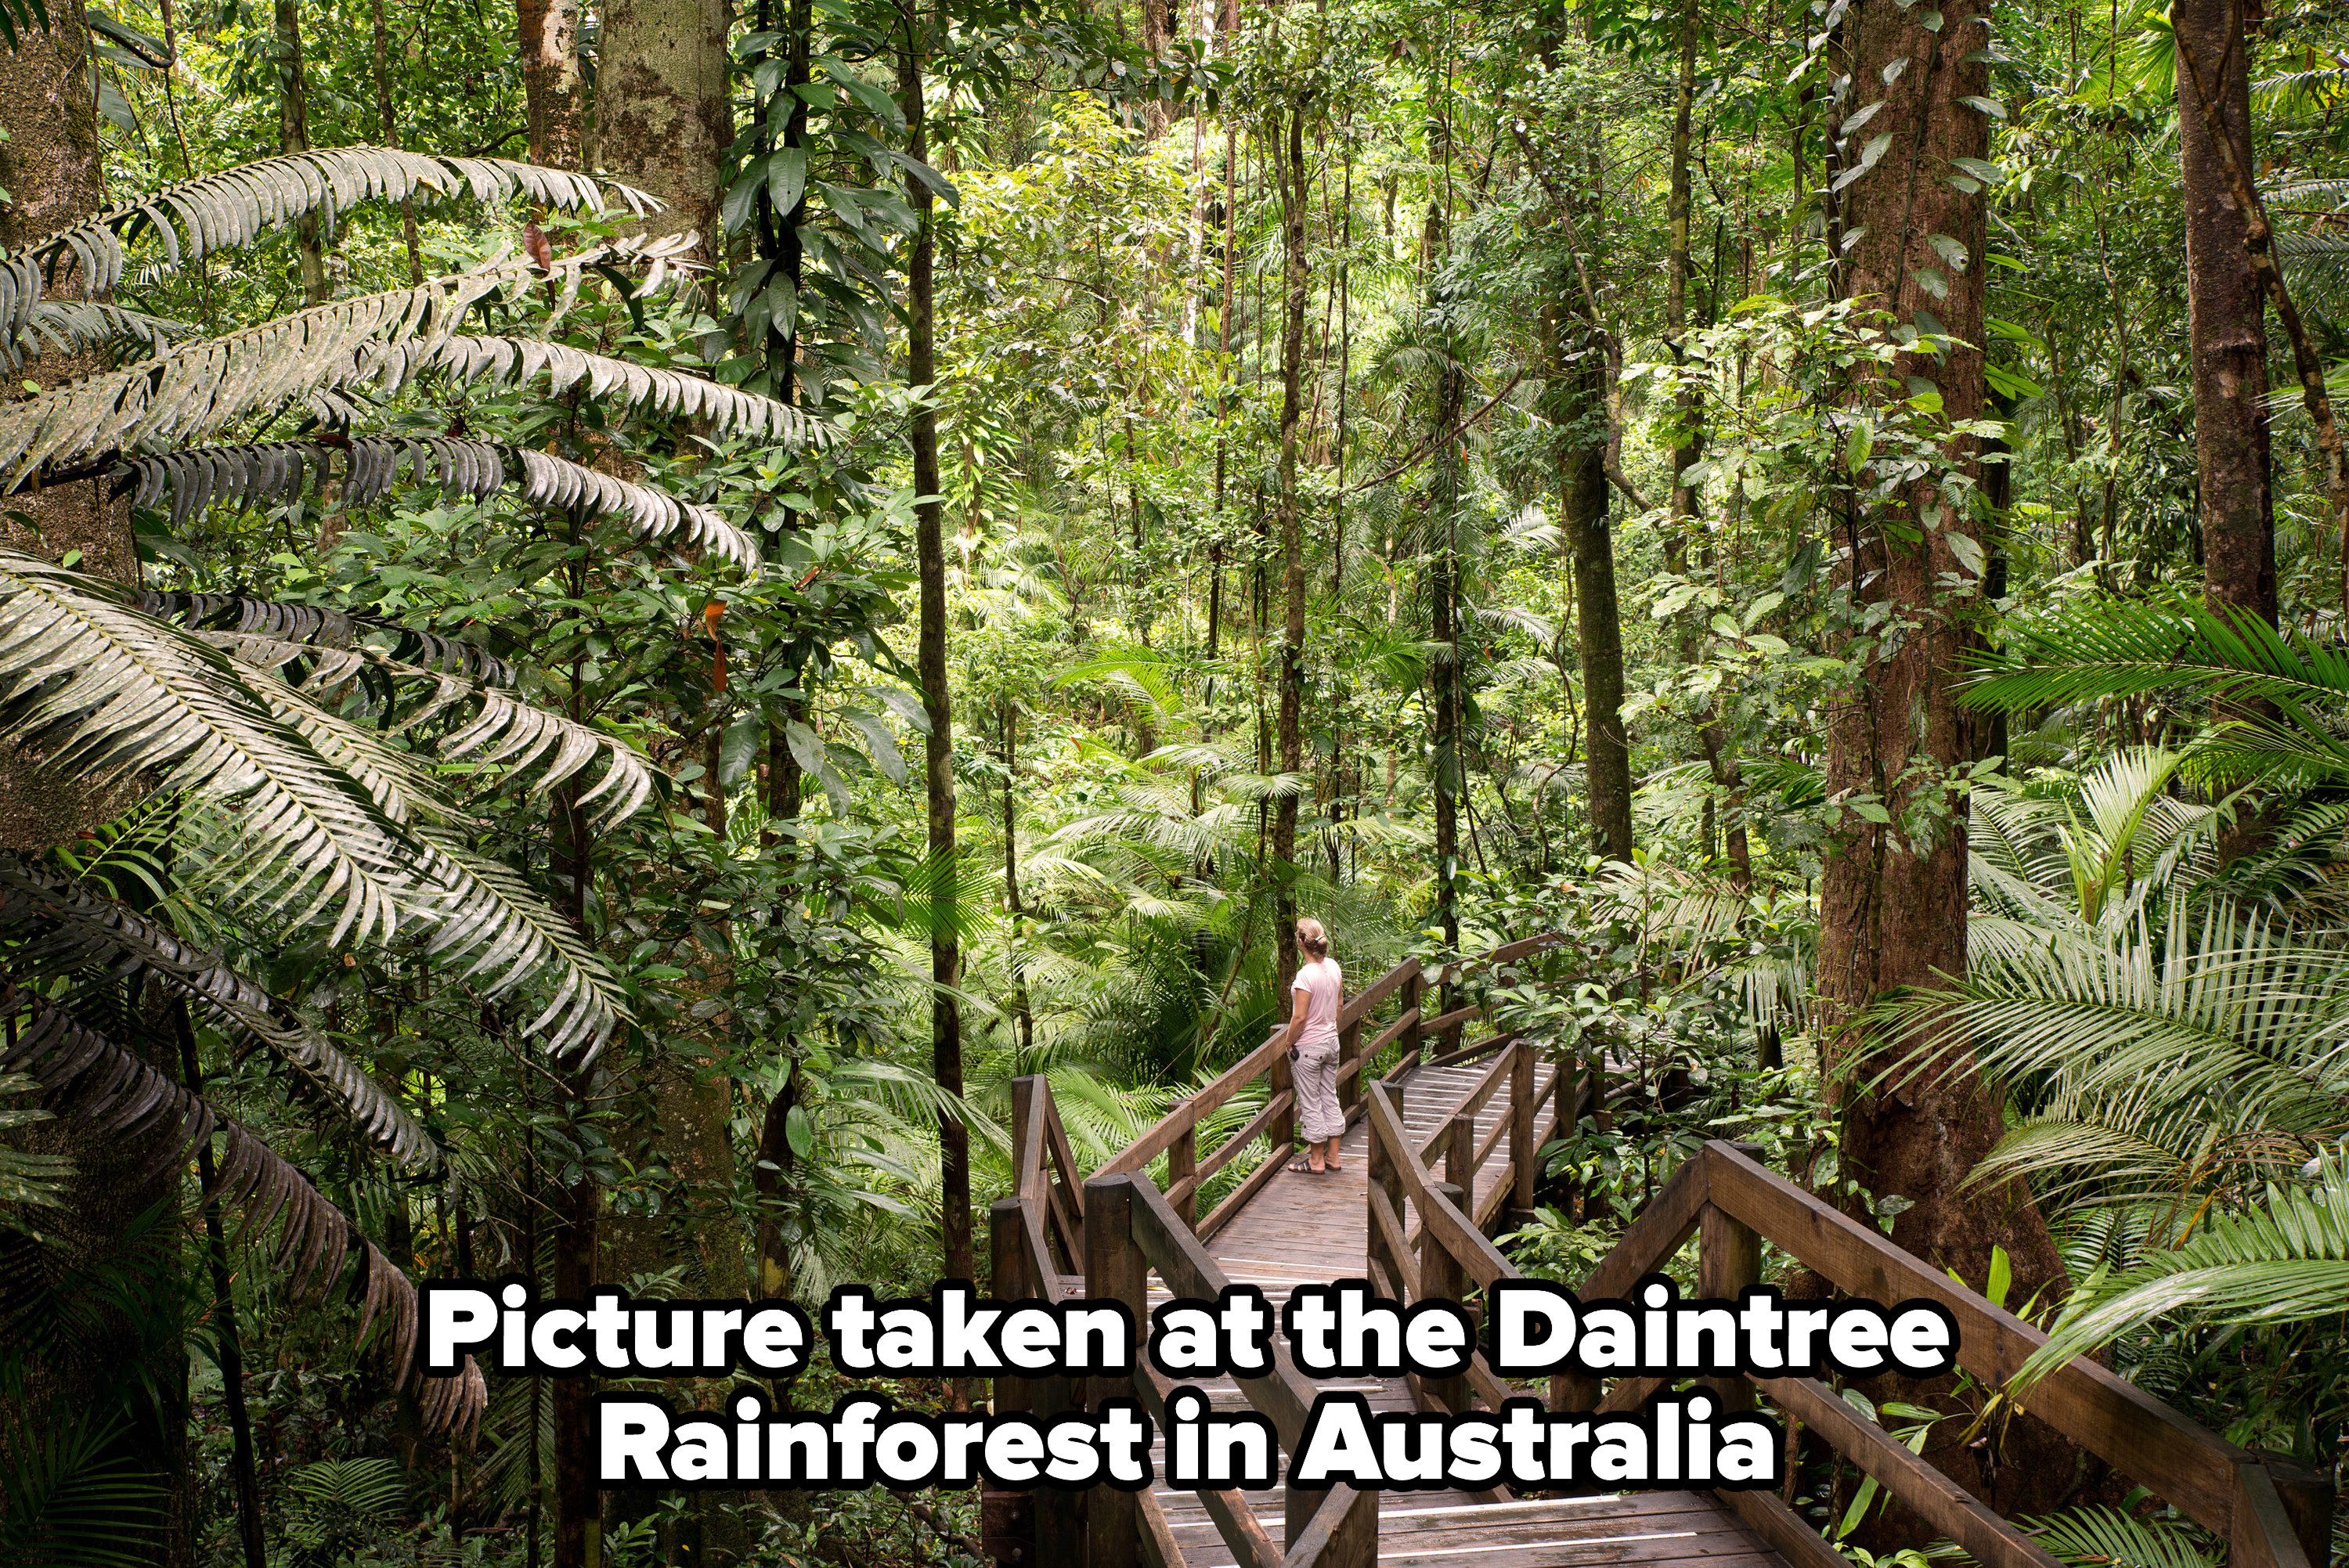 A picture taken at the Daintree Rainforest in Australia